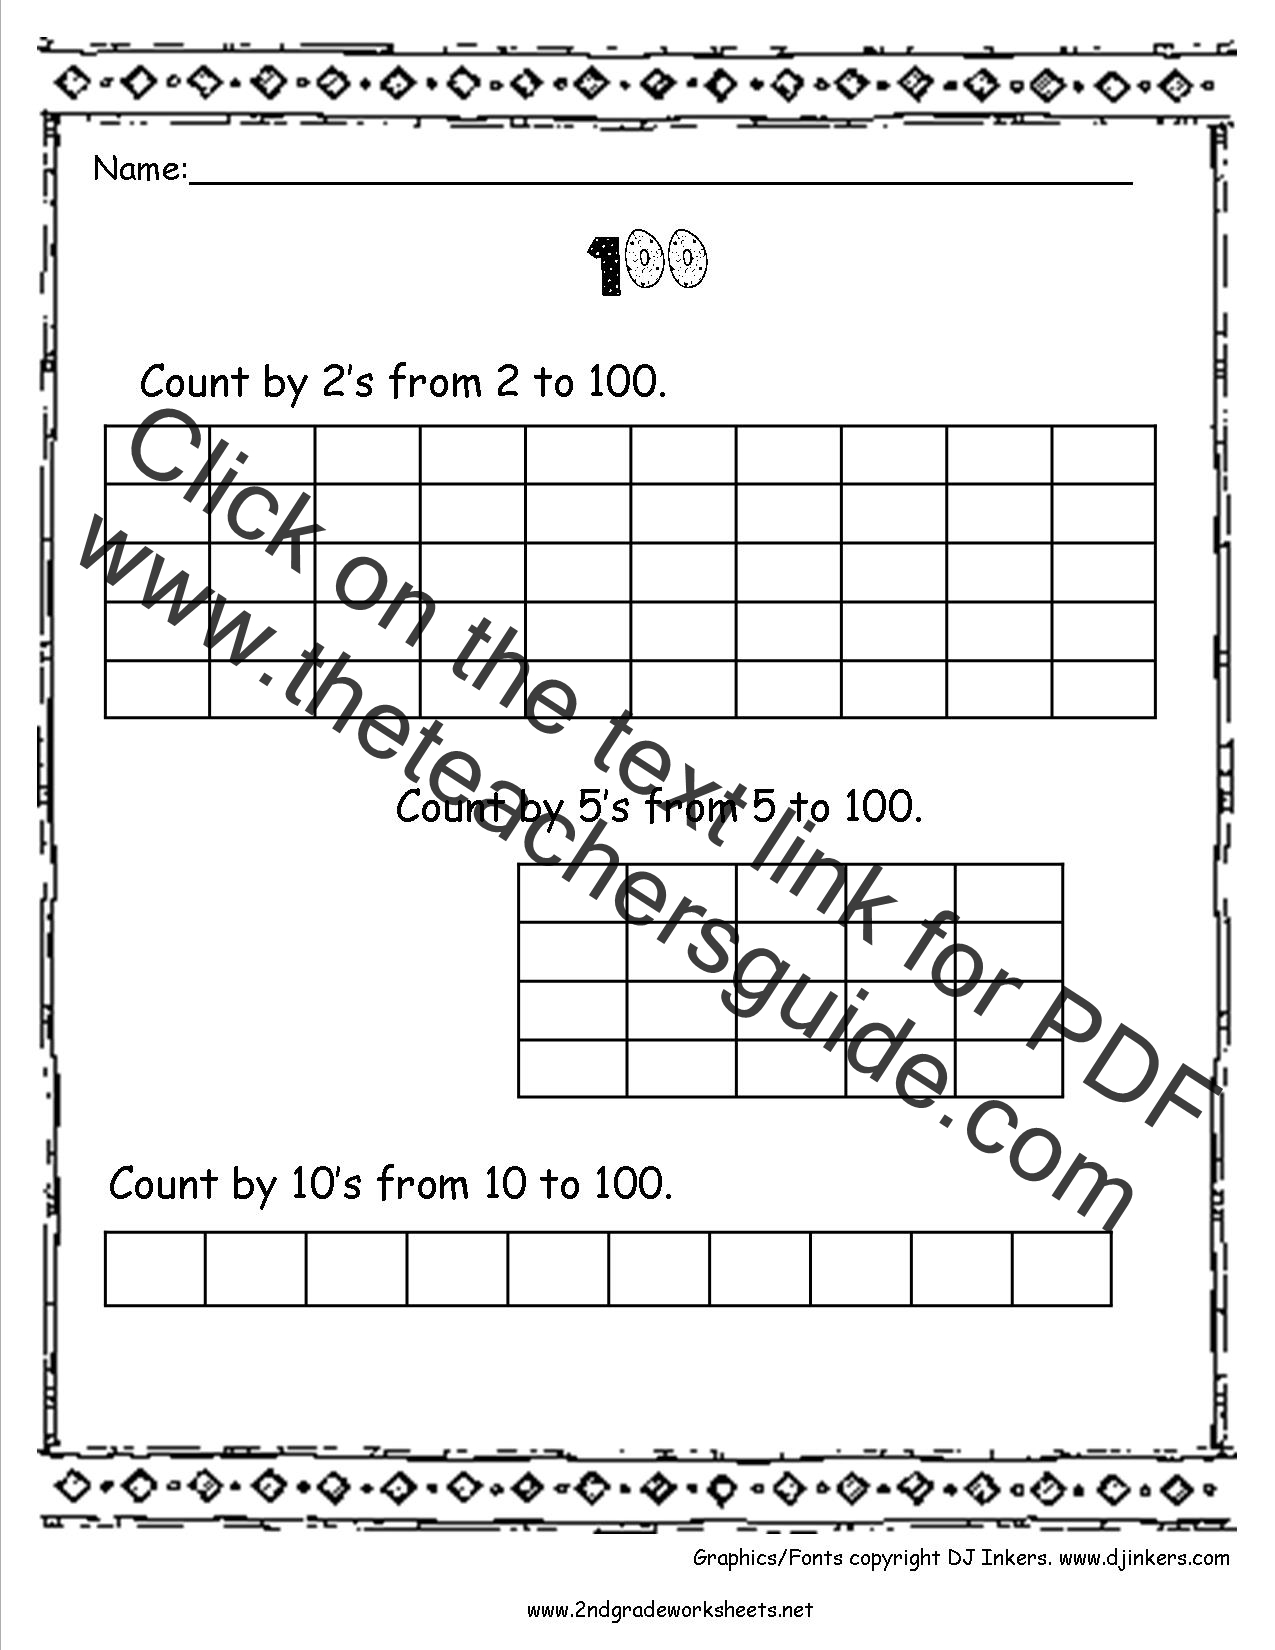 100th day of worksheets and printouts